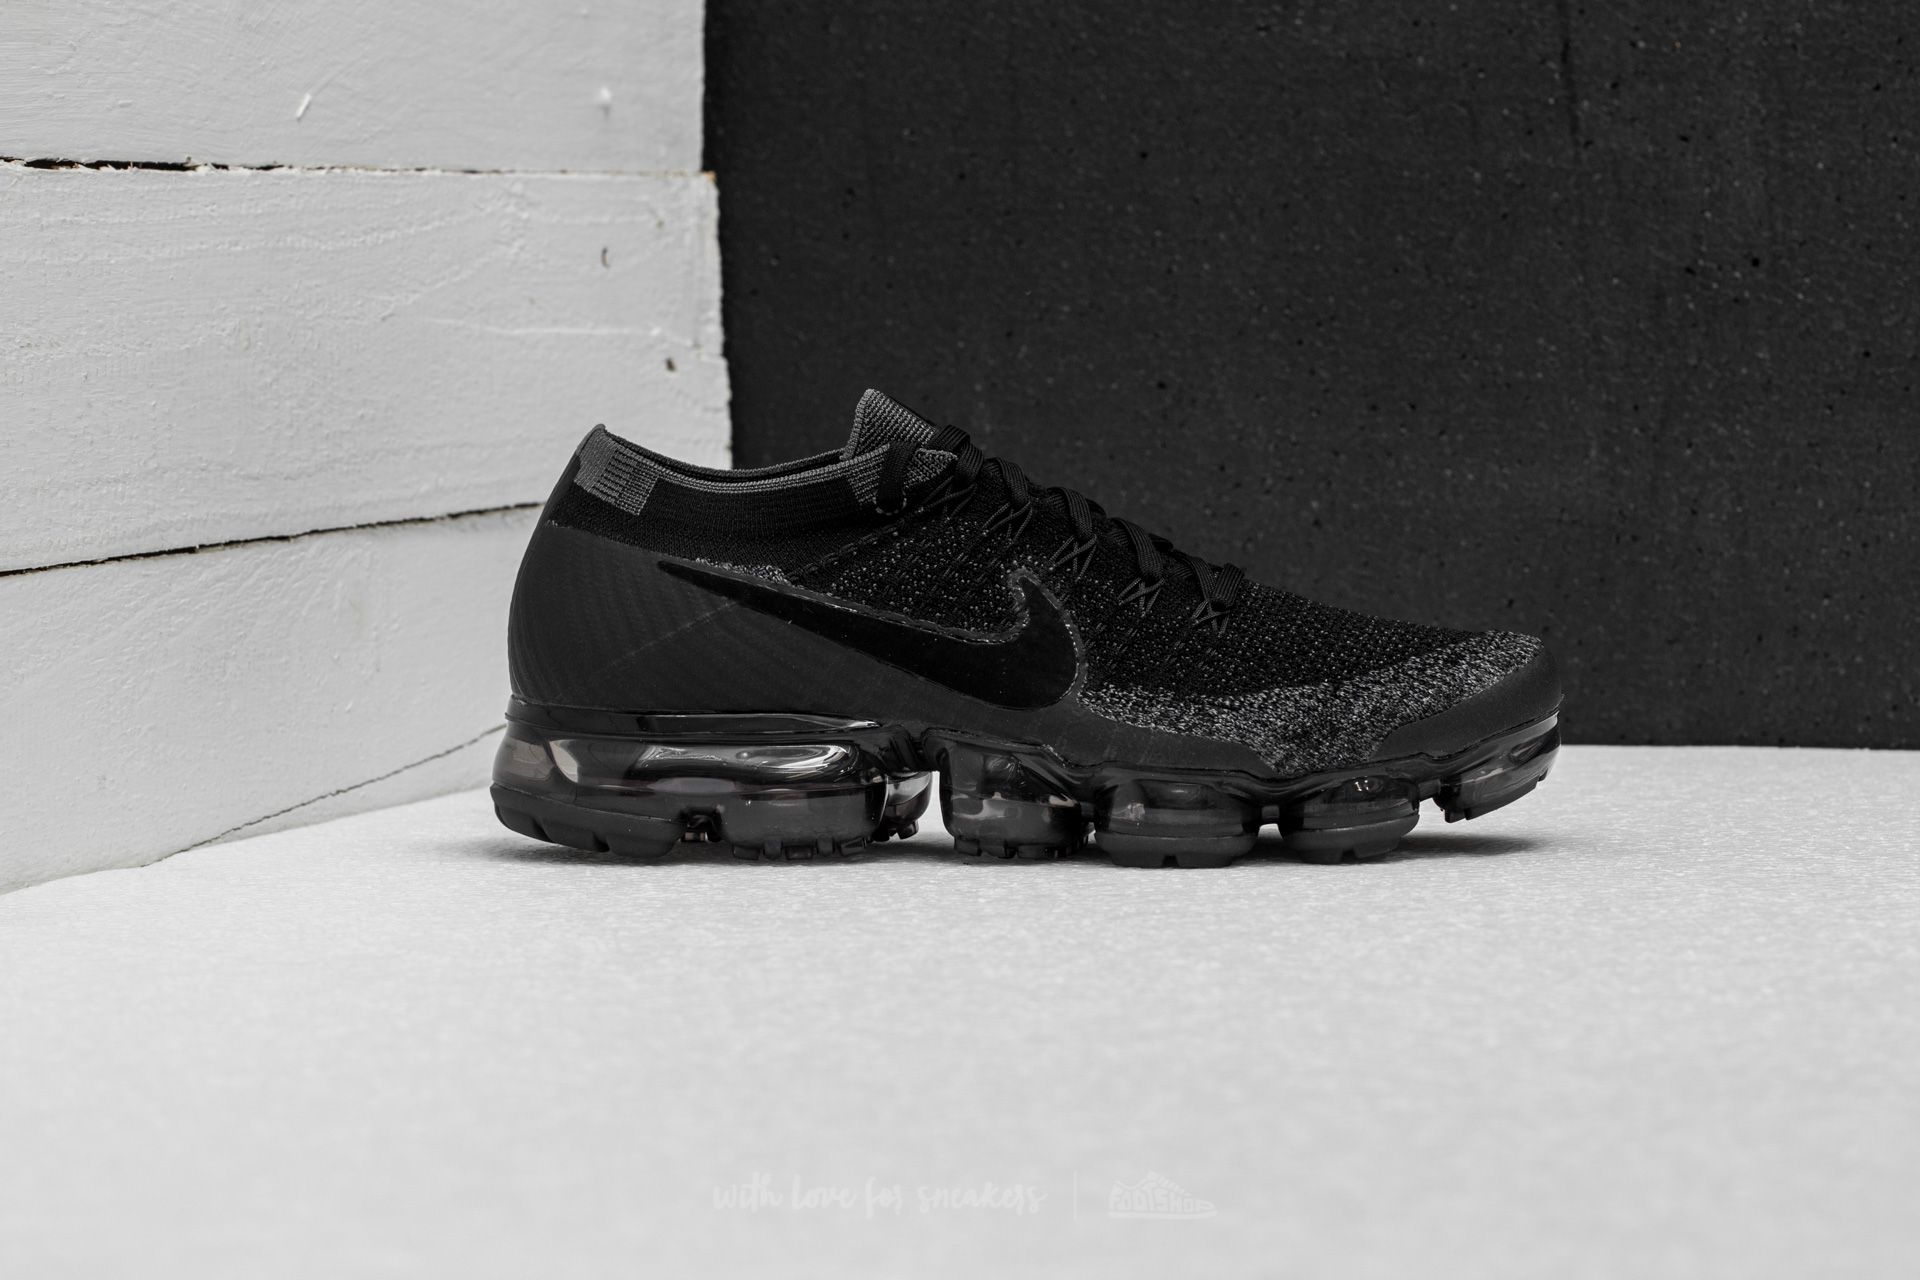 presenting factory outlets reasonably priced Nike Air Vapormax Flyknit Black/ Anthracite-Dark Grey | Footshop